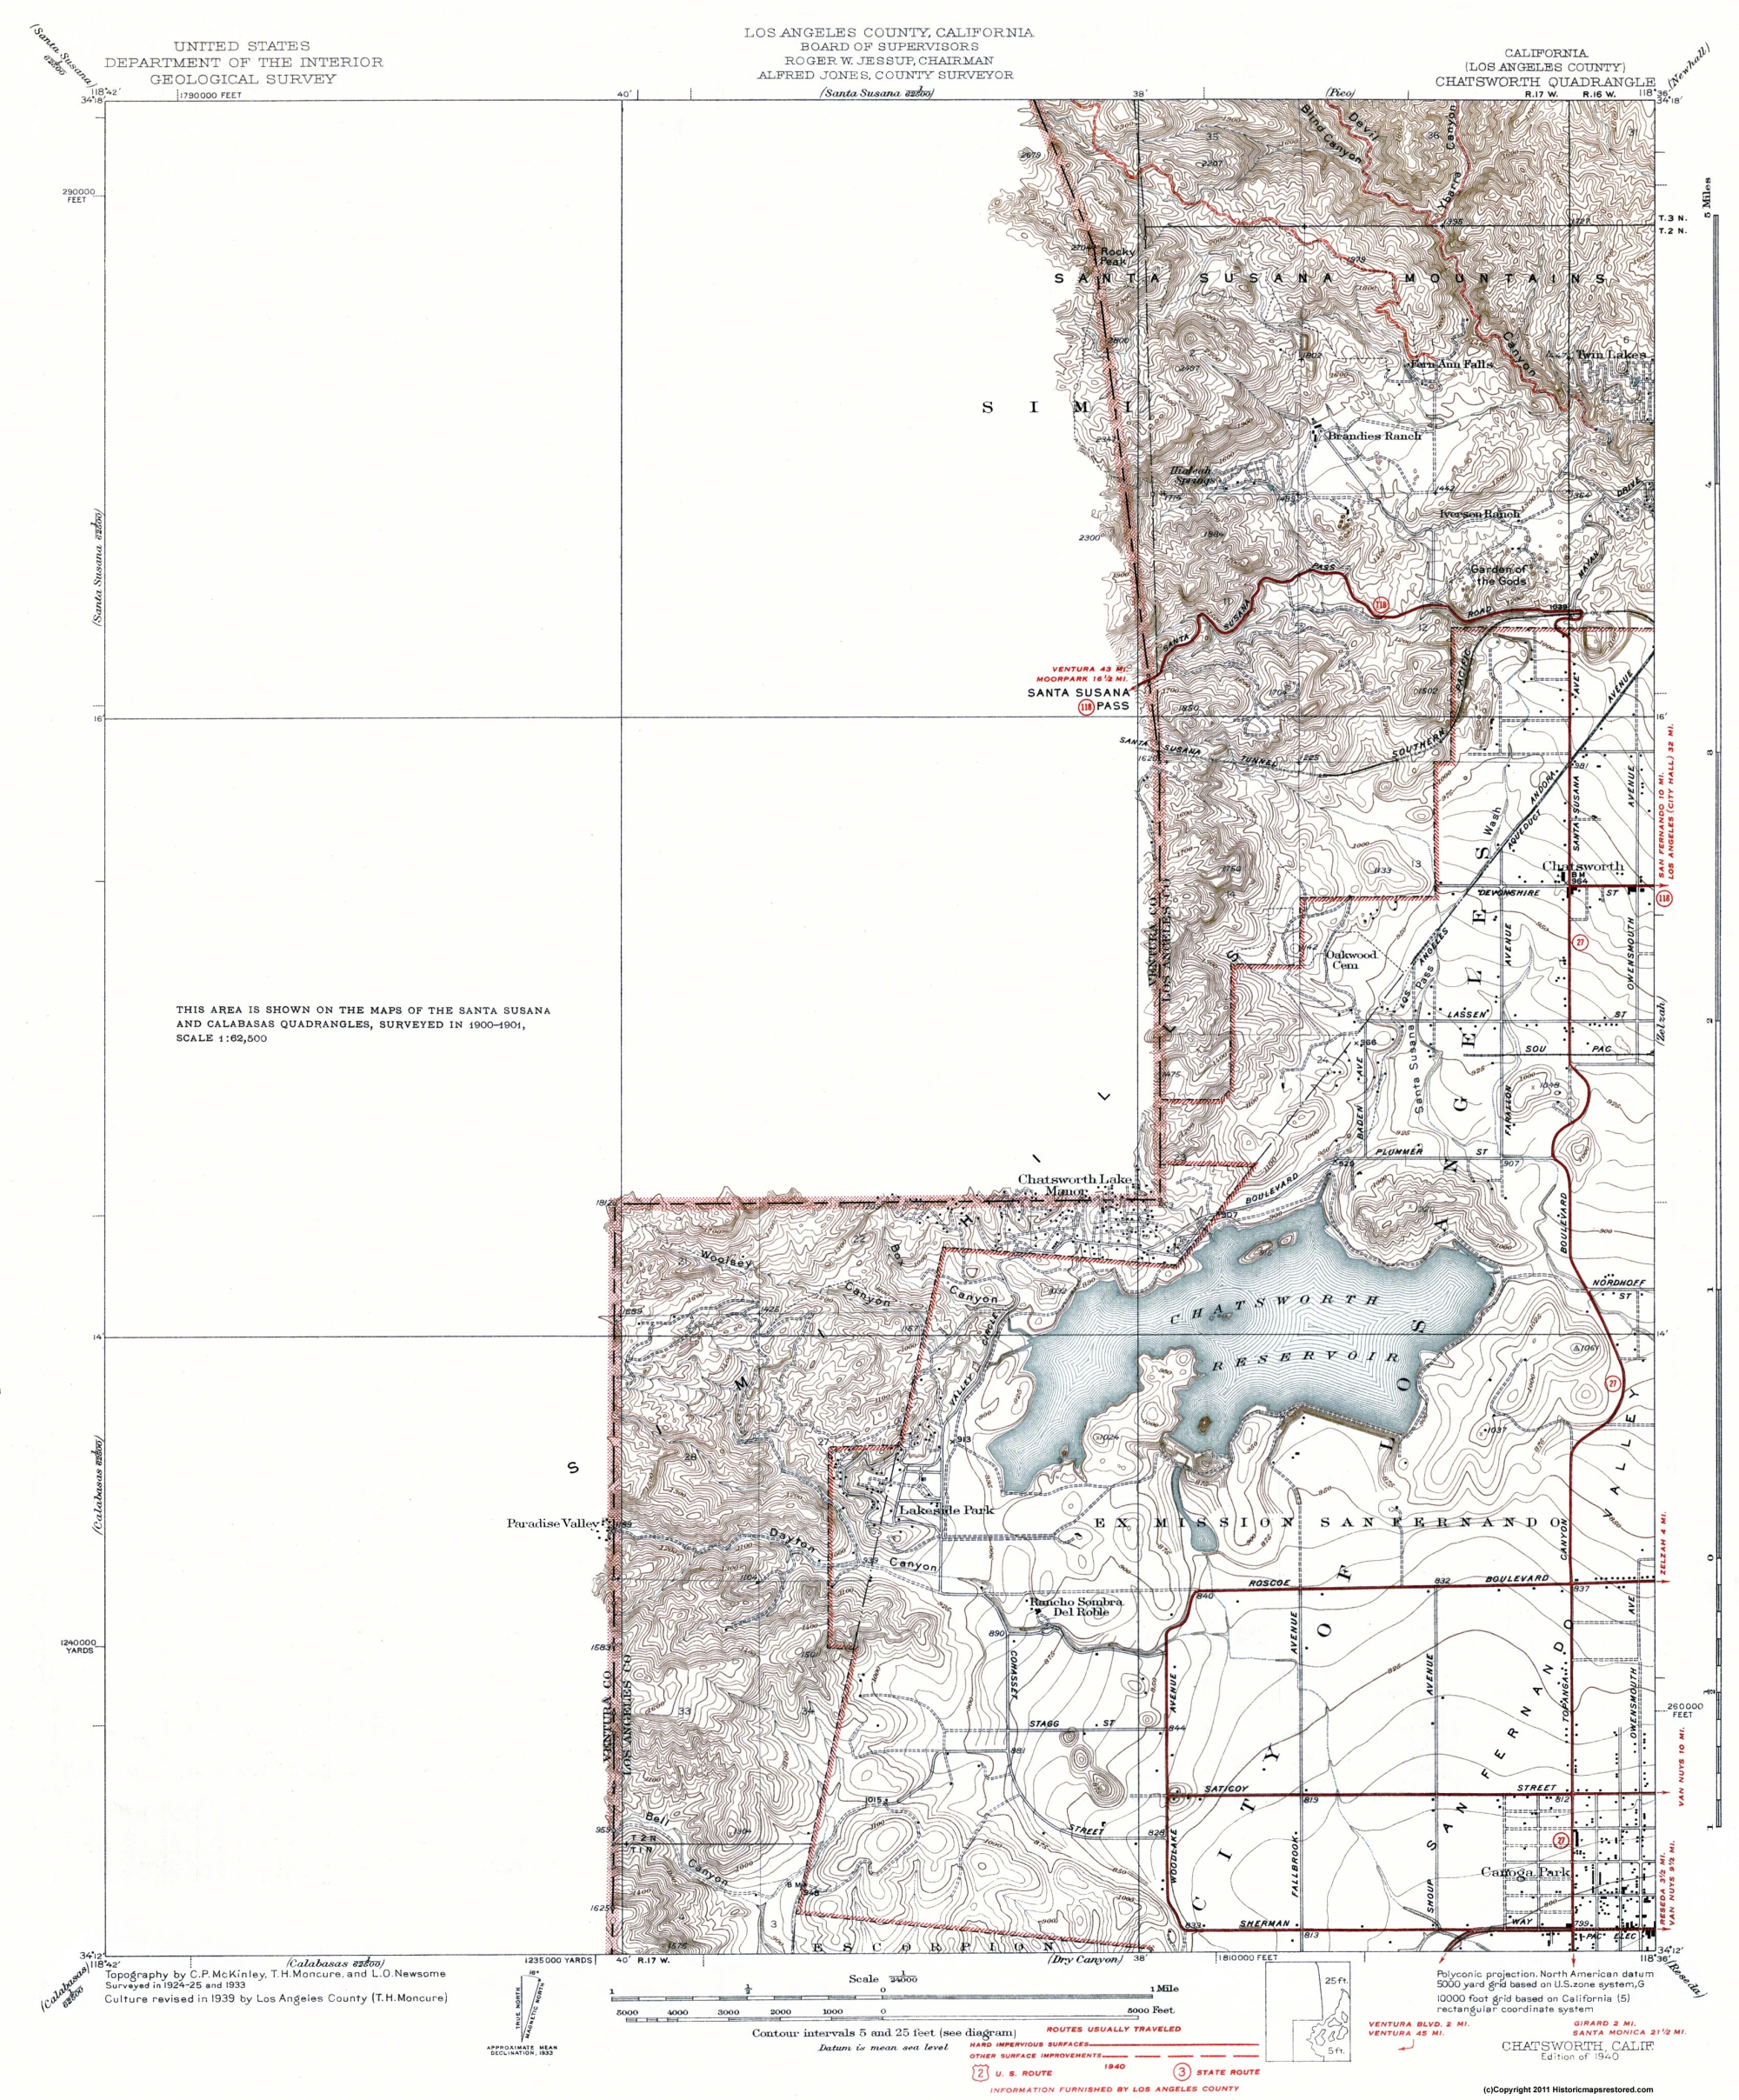 Old Topographical Map - Chatsworth California 1940 on